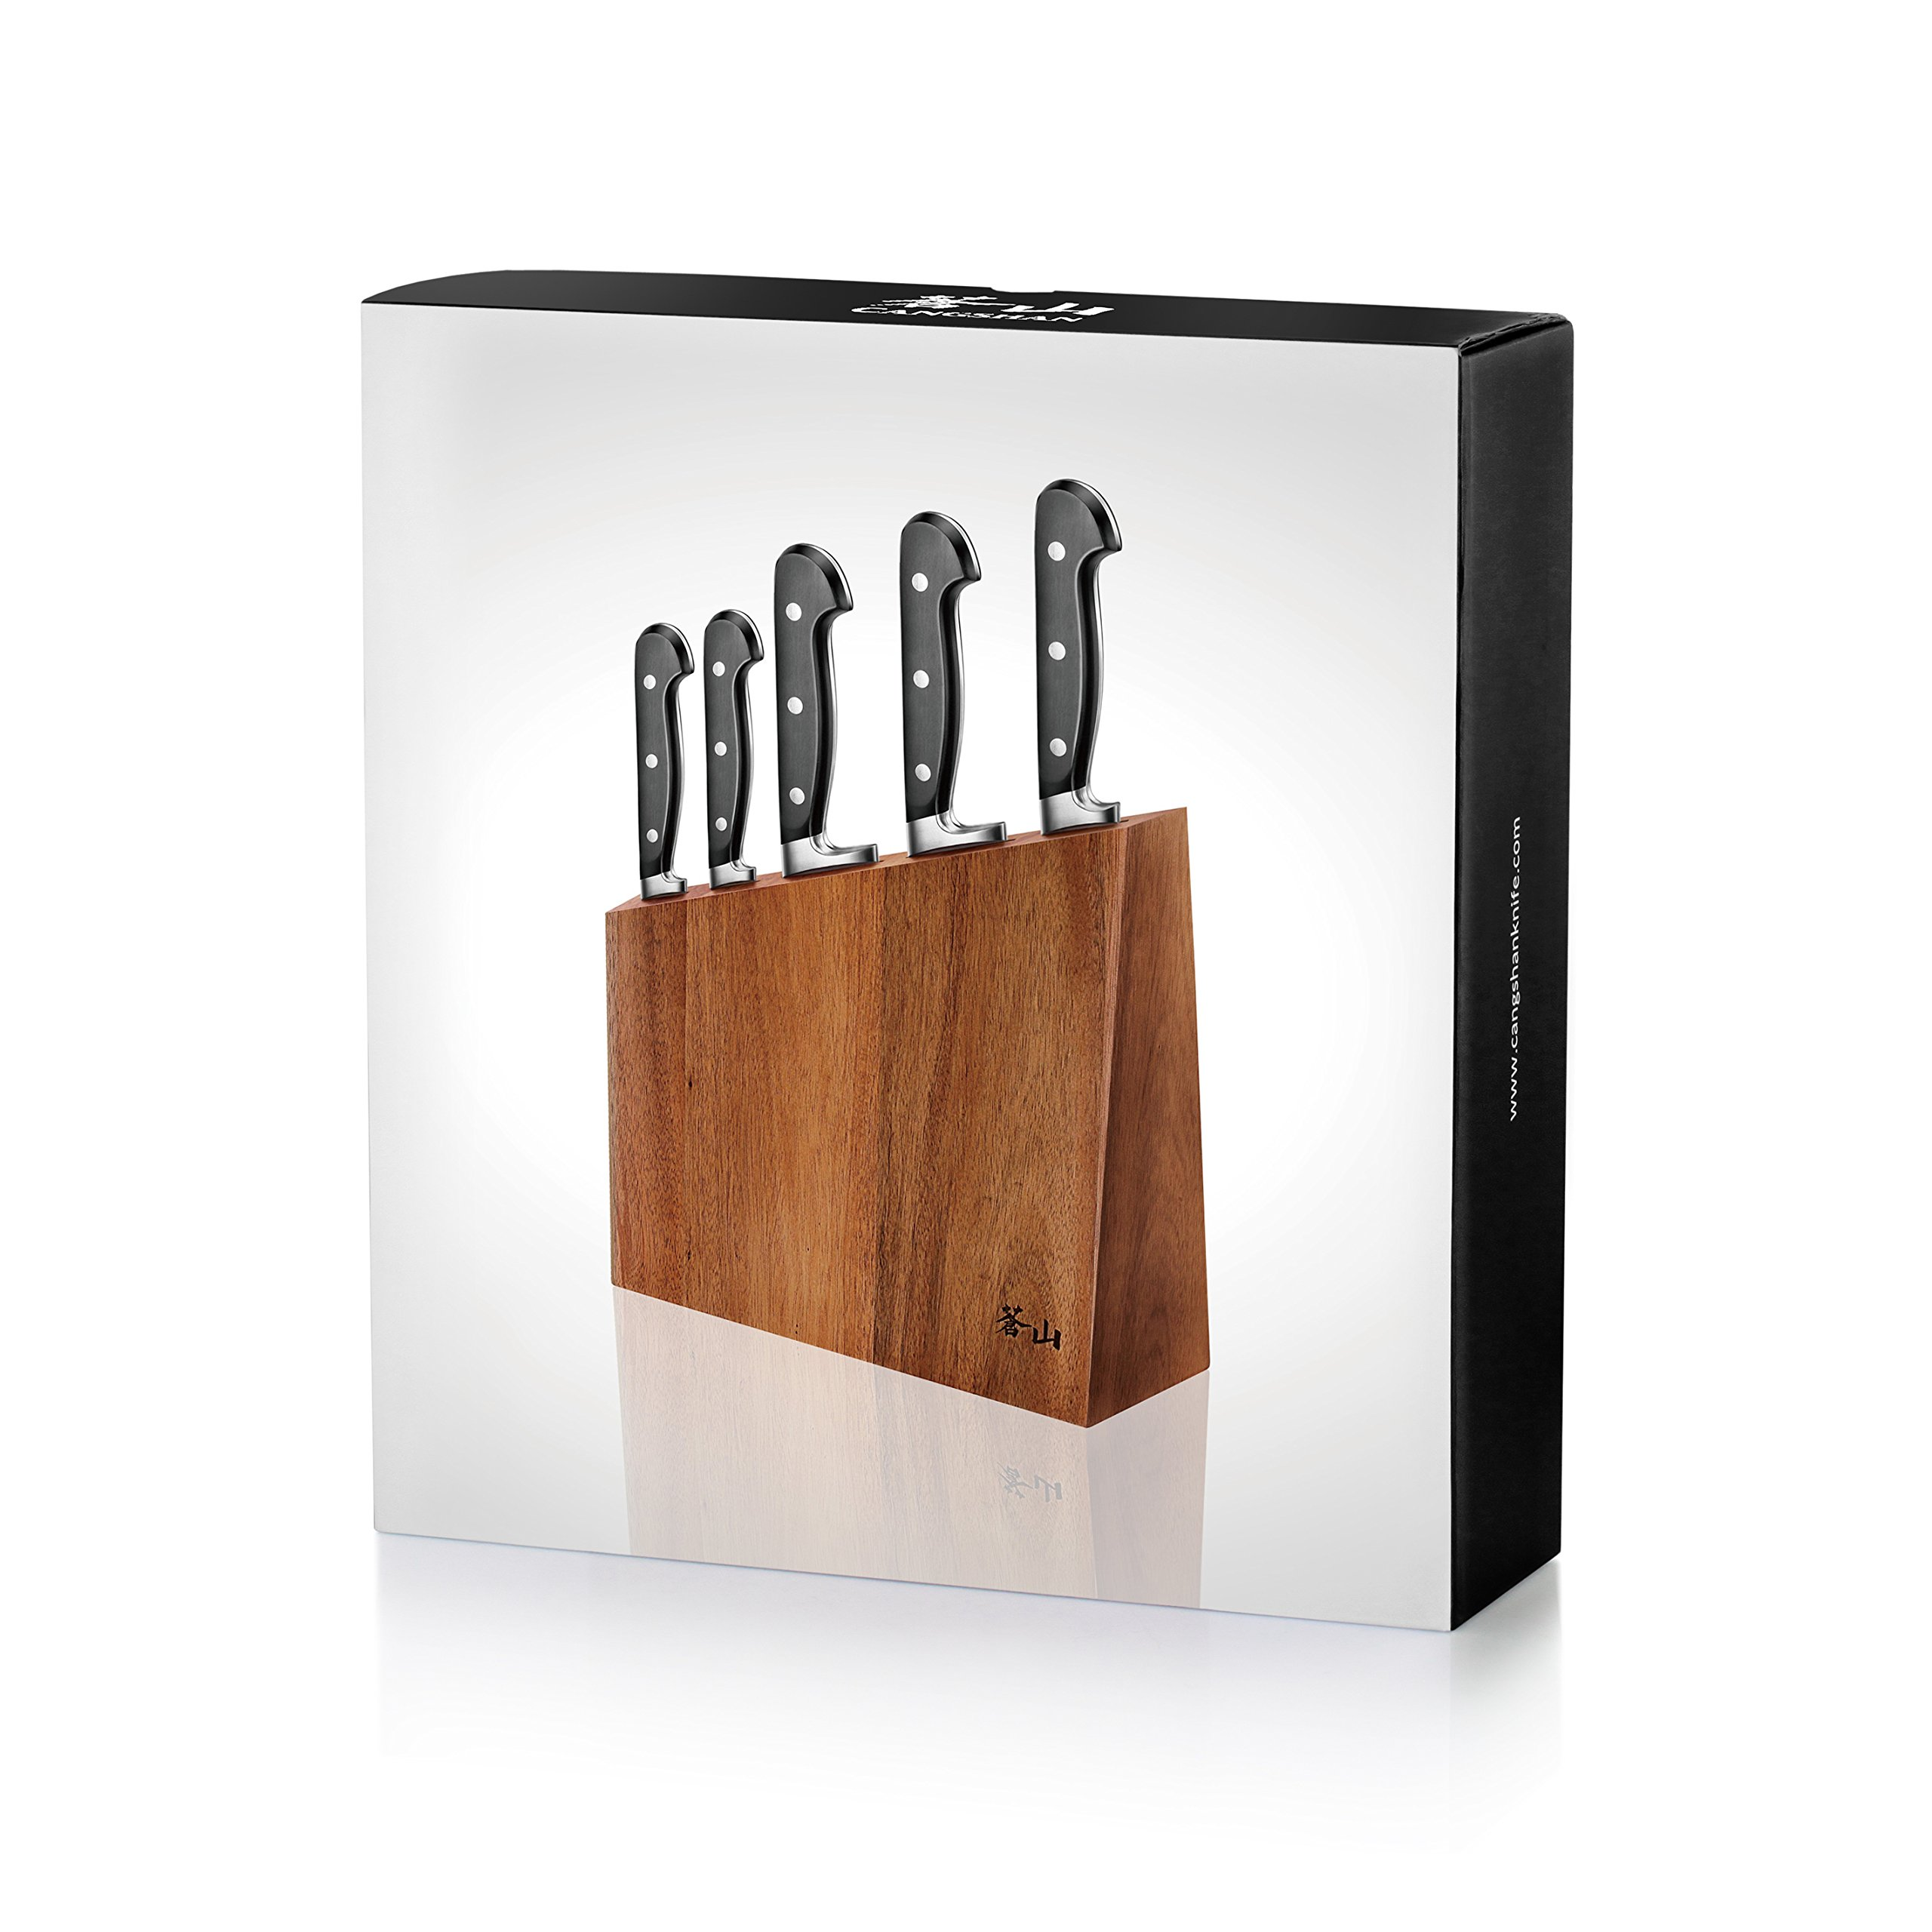 Cangshan V2 Series 59908 6-Piece German Steel Forged Knife Block Set by Cangshan (Image #9)